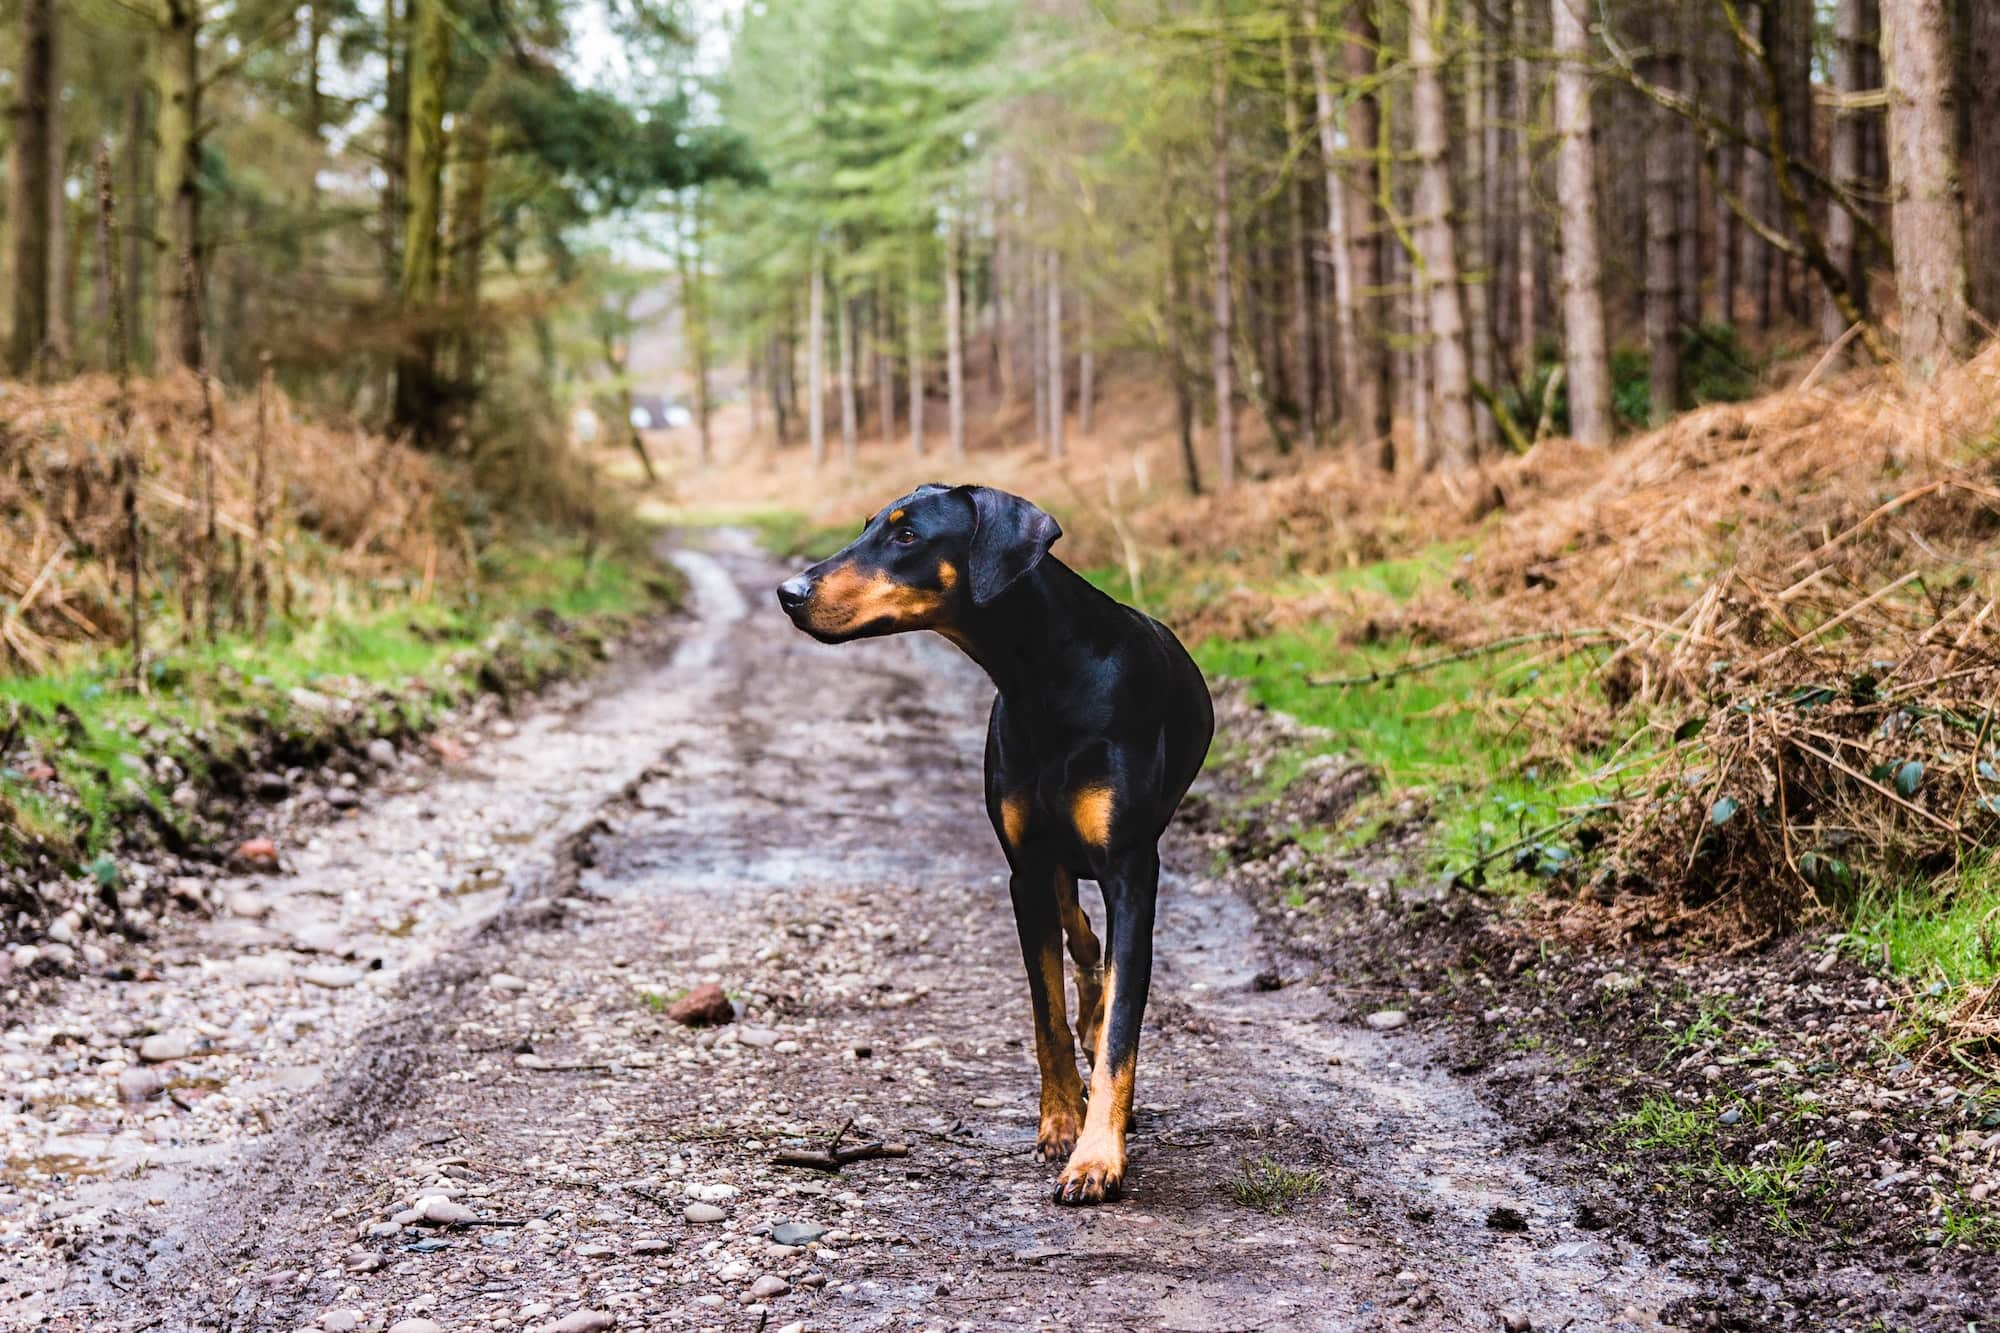 Doberman dog walking through the woods